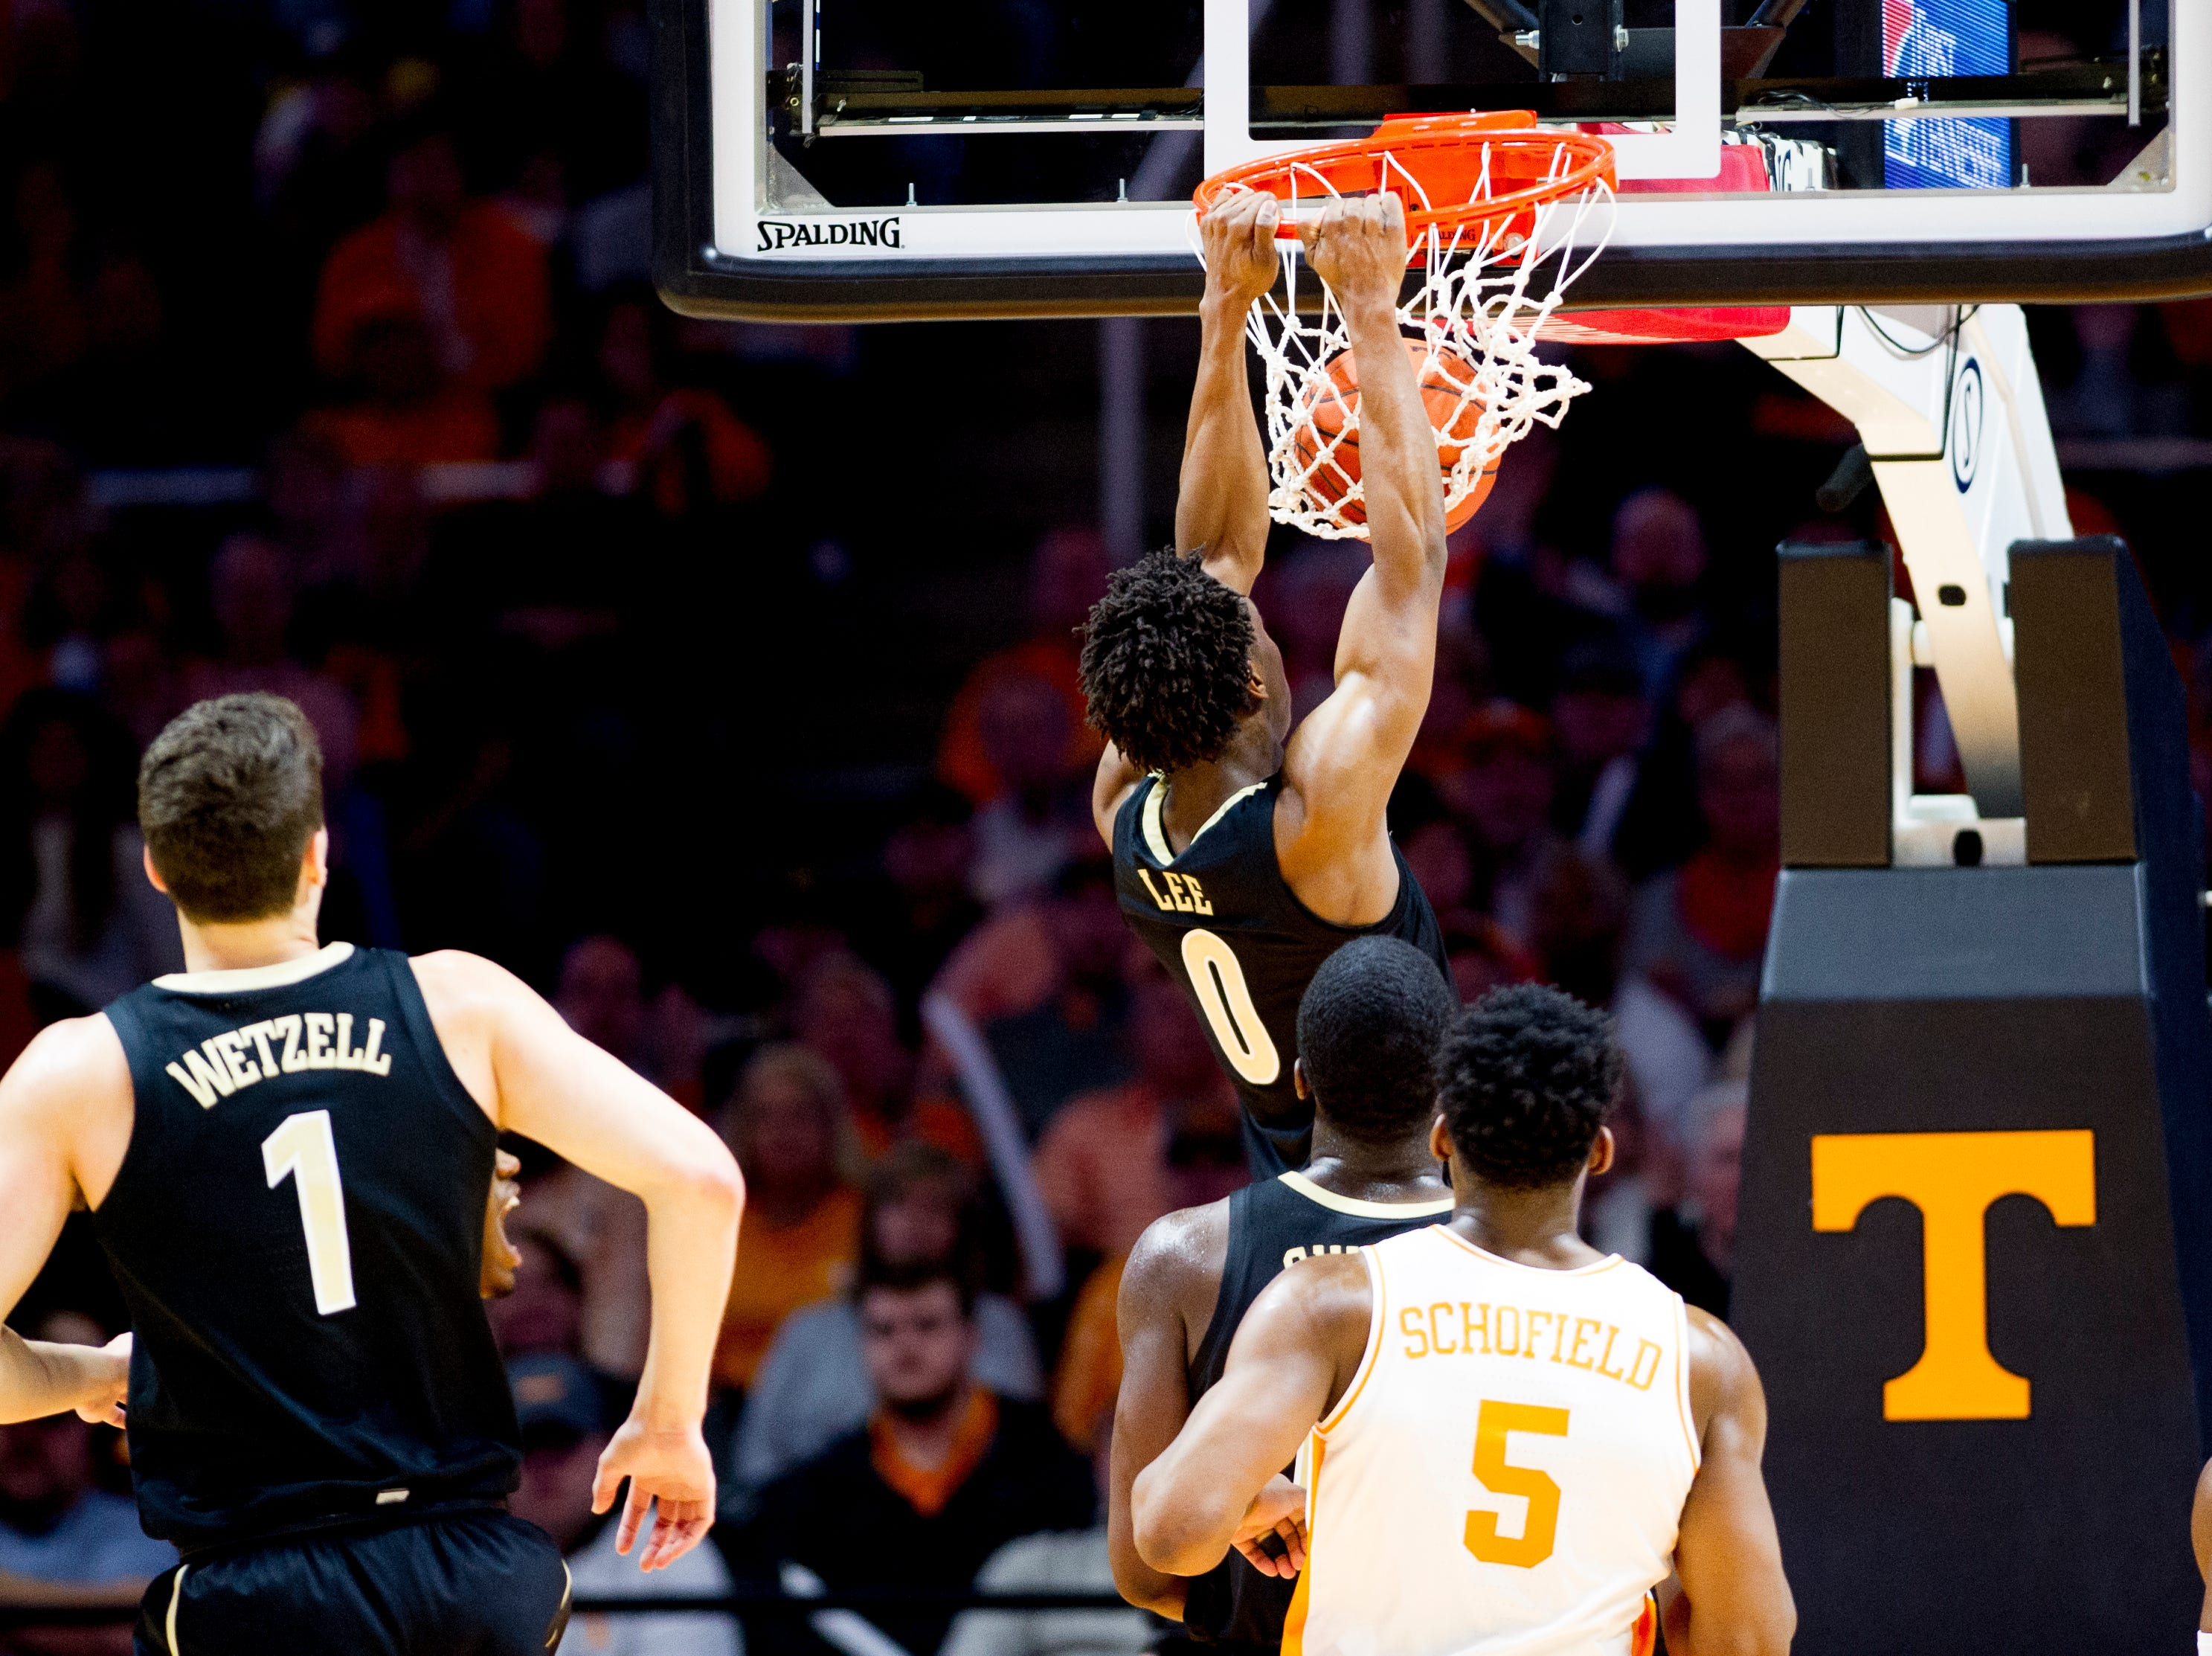 Tennessee guard Jordan Bone (0) dunks the ball during a game between Tennessee and Vanderbilt at Thompson-Boling Arena in Knoxville, Tennessee on Tuesday, February 19, 2019.